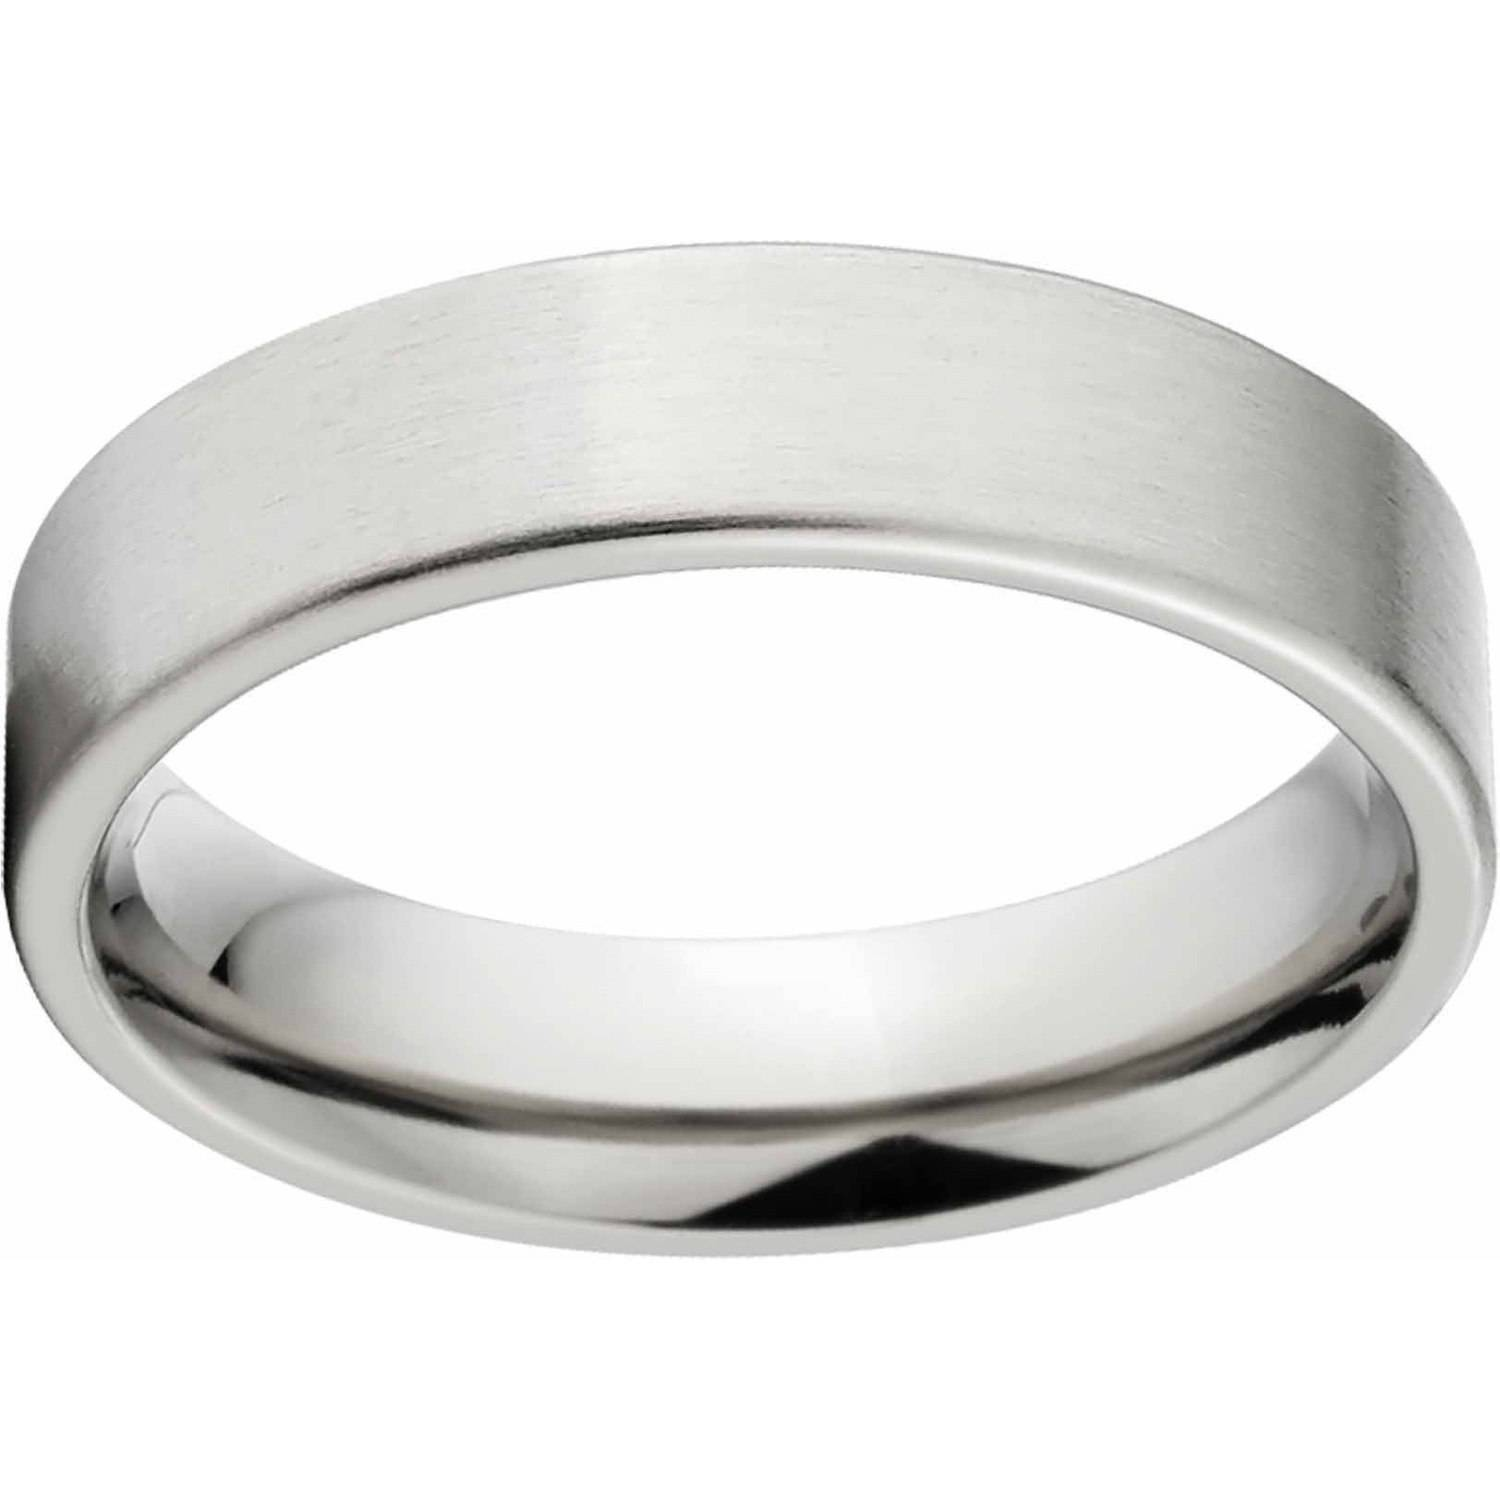 Brushed 5mm Titanium Wedding Band with fort Fit Design